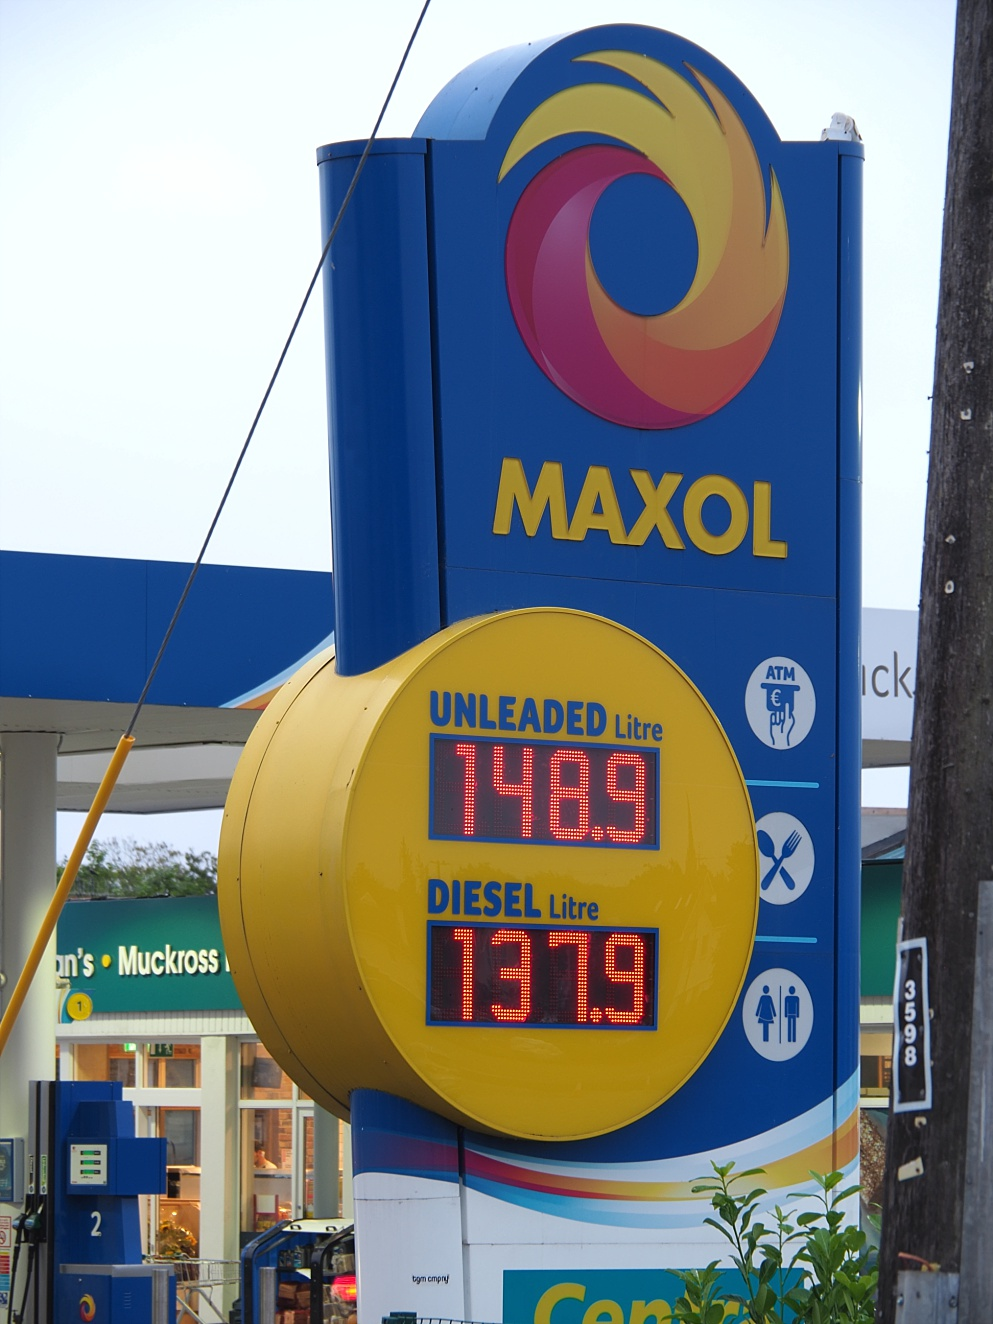 Sign showing price of petrol in Ireland